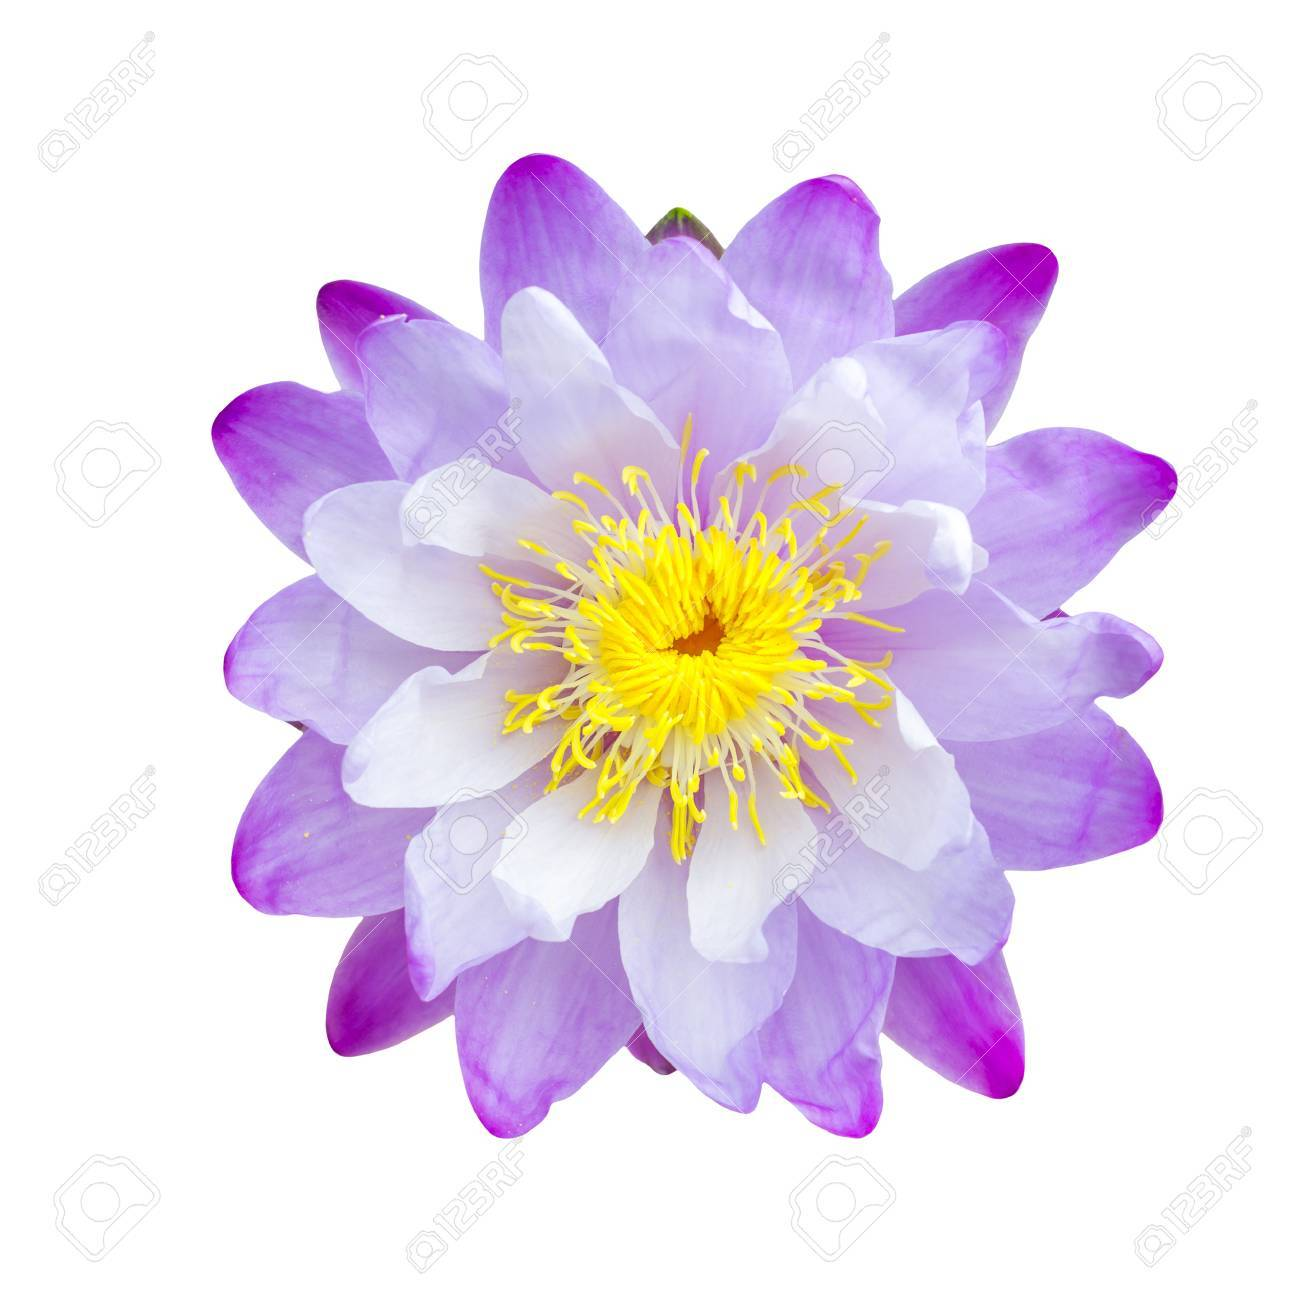 Purple lotus flower isolated with clipping path stock photo purple lotus flower isolated with clipping path stock photo 24666369 izmirmasajfo Gallery